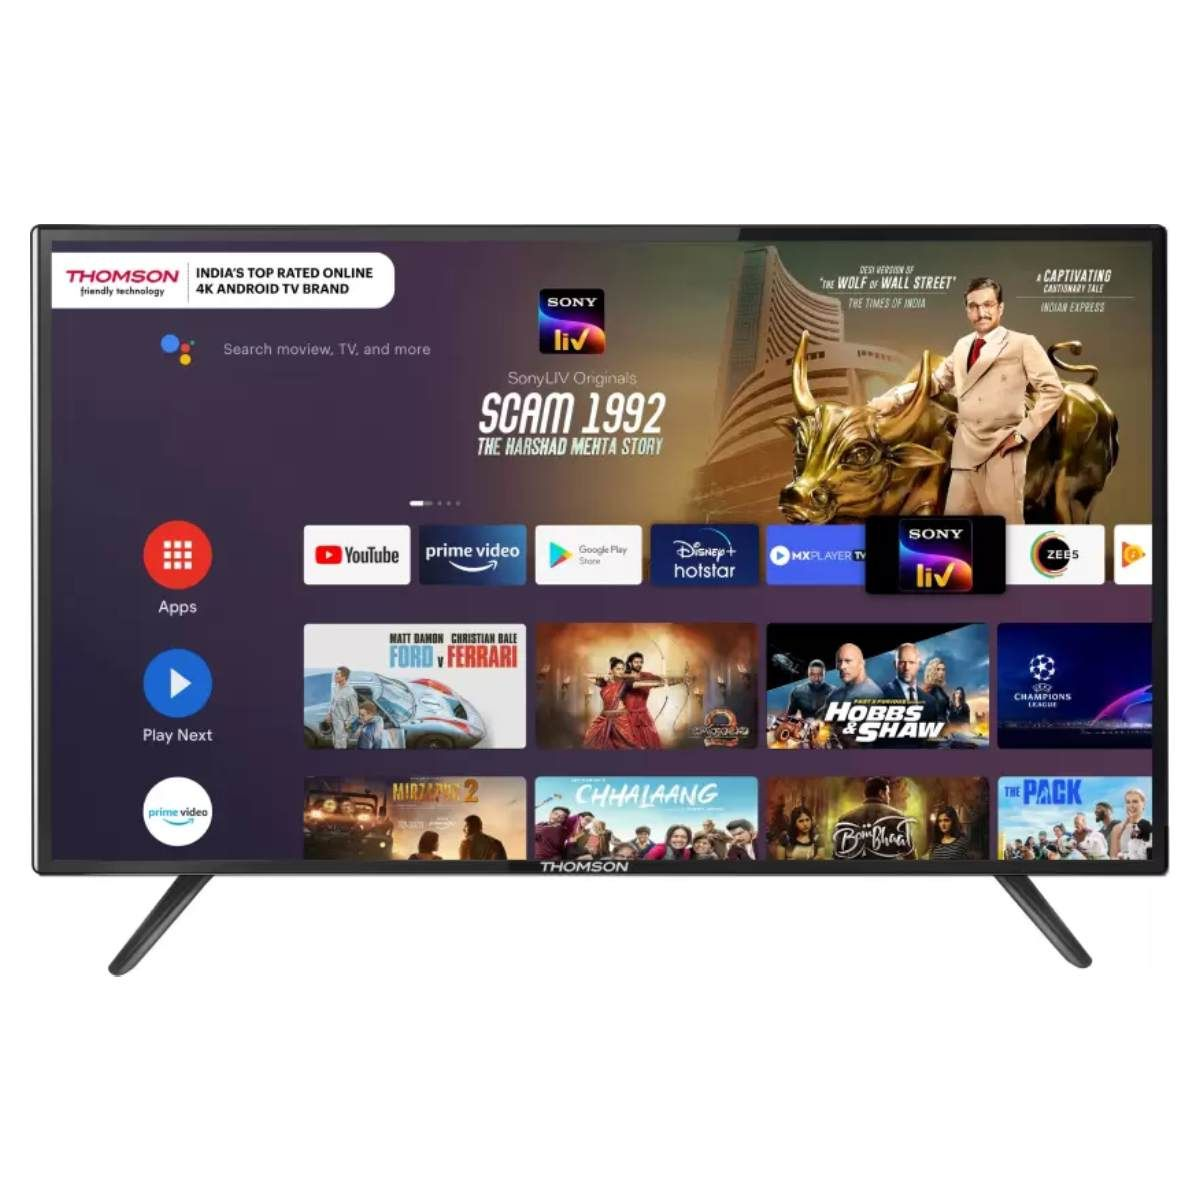 Thomson 9R Series 50 inch 4K LED Smart Android TV(50PATH1010)